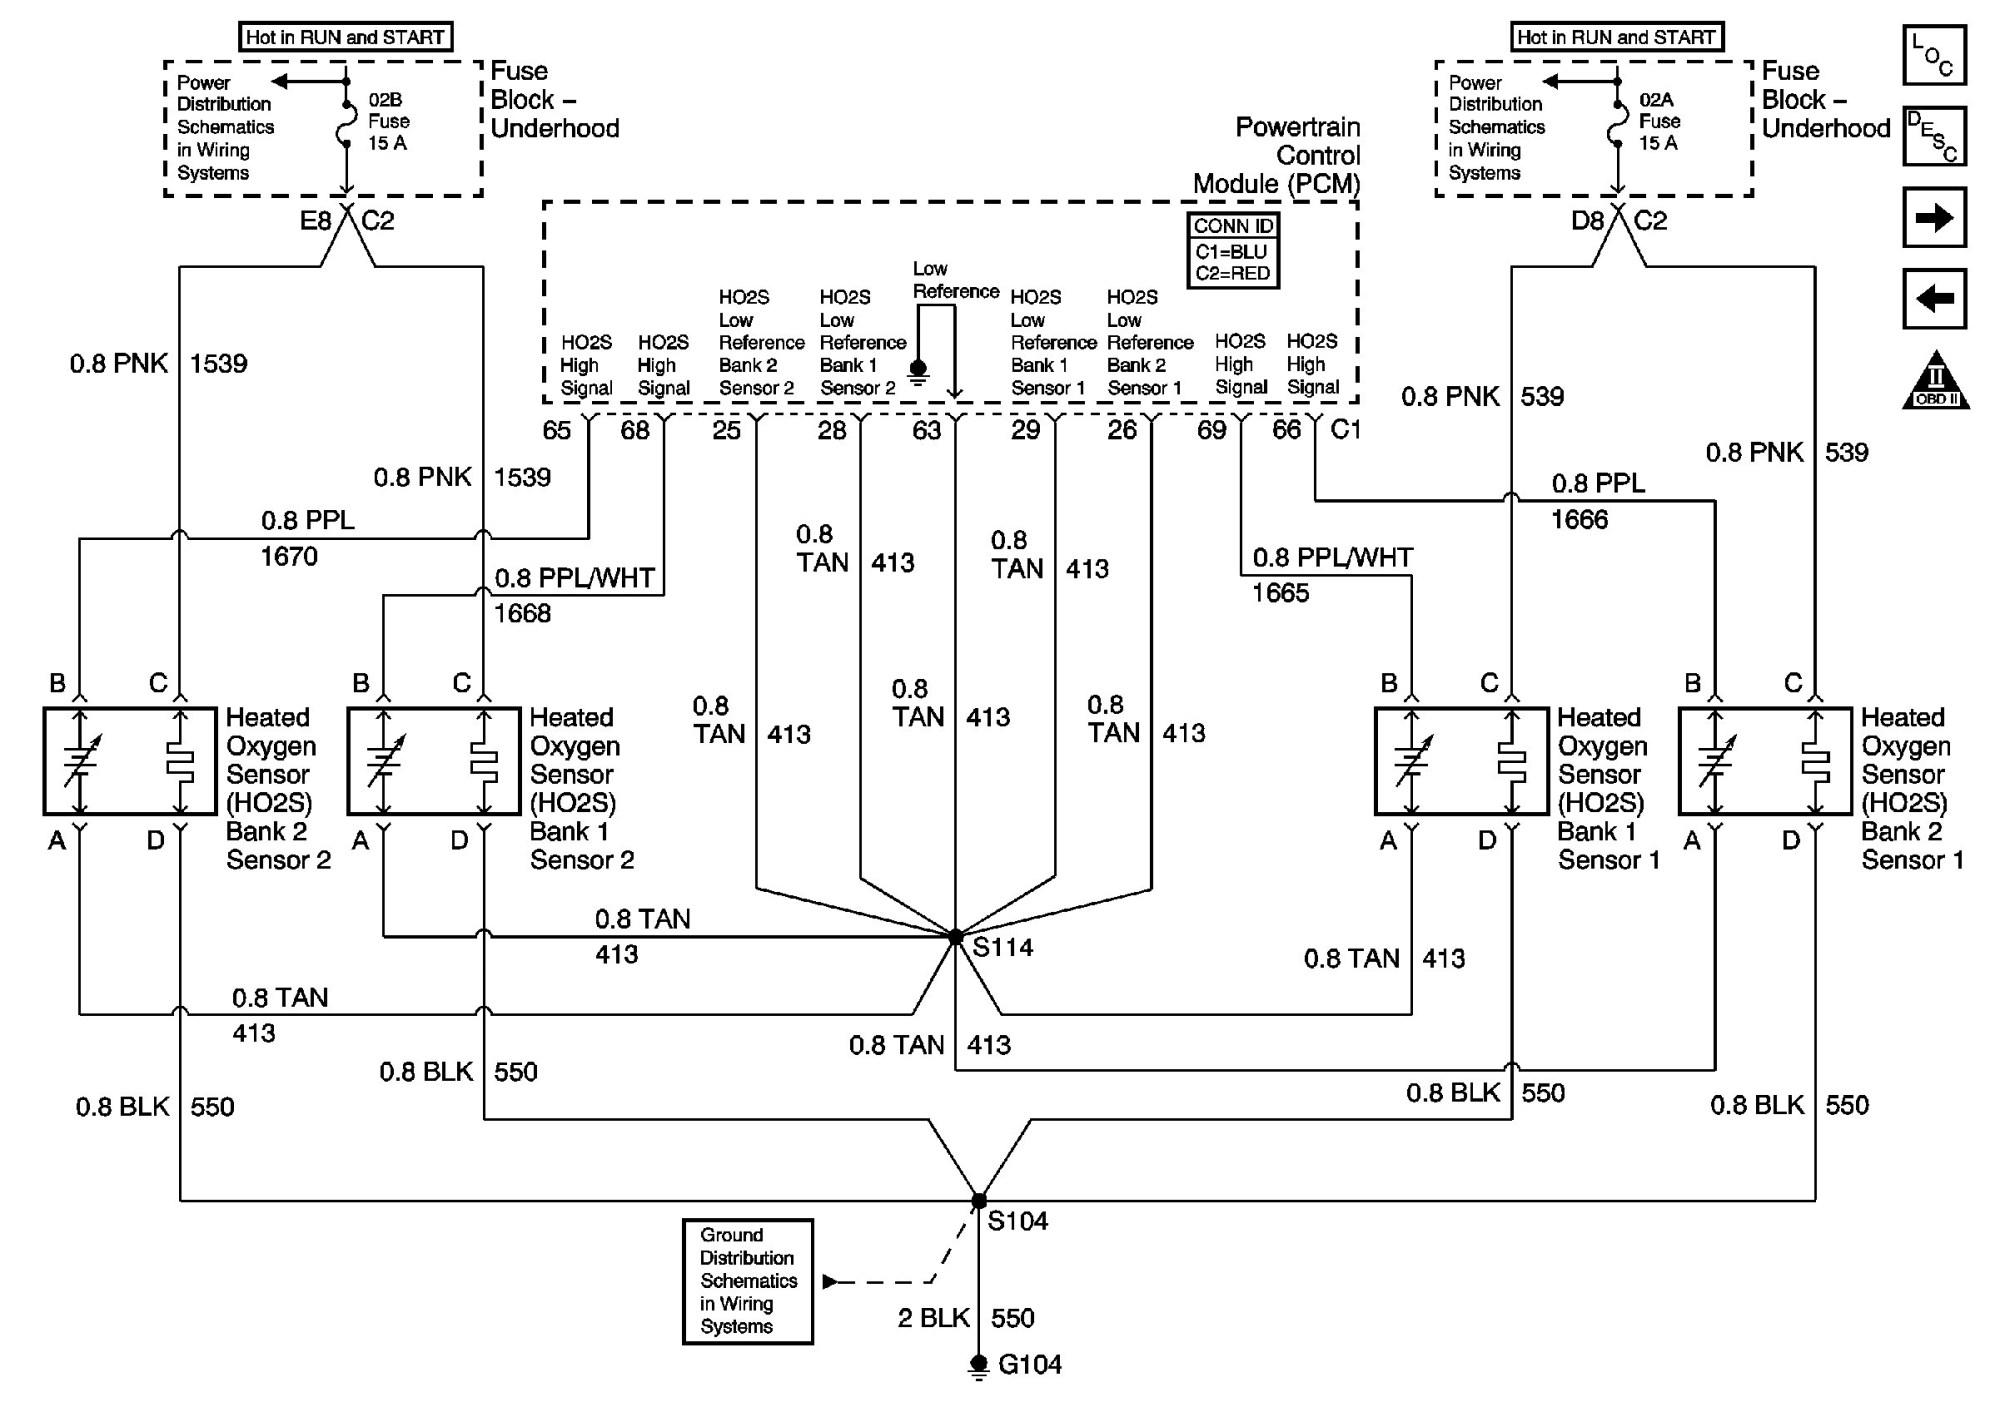 hight resolution of jtr 280z v8 wiring diagram schema diagram databasewiring diagram for 280z v8 wiring diagram jtr 280z